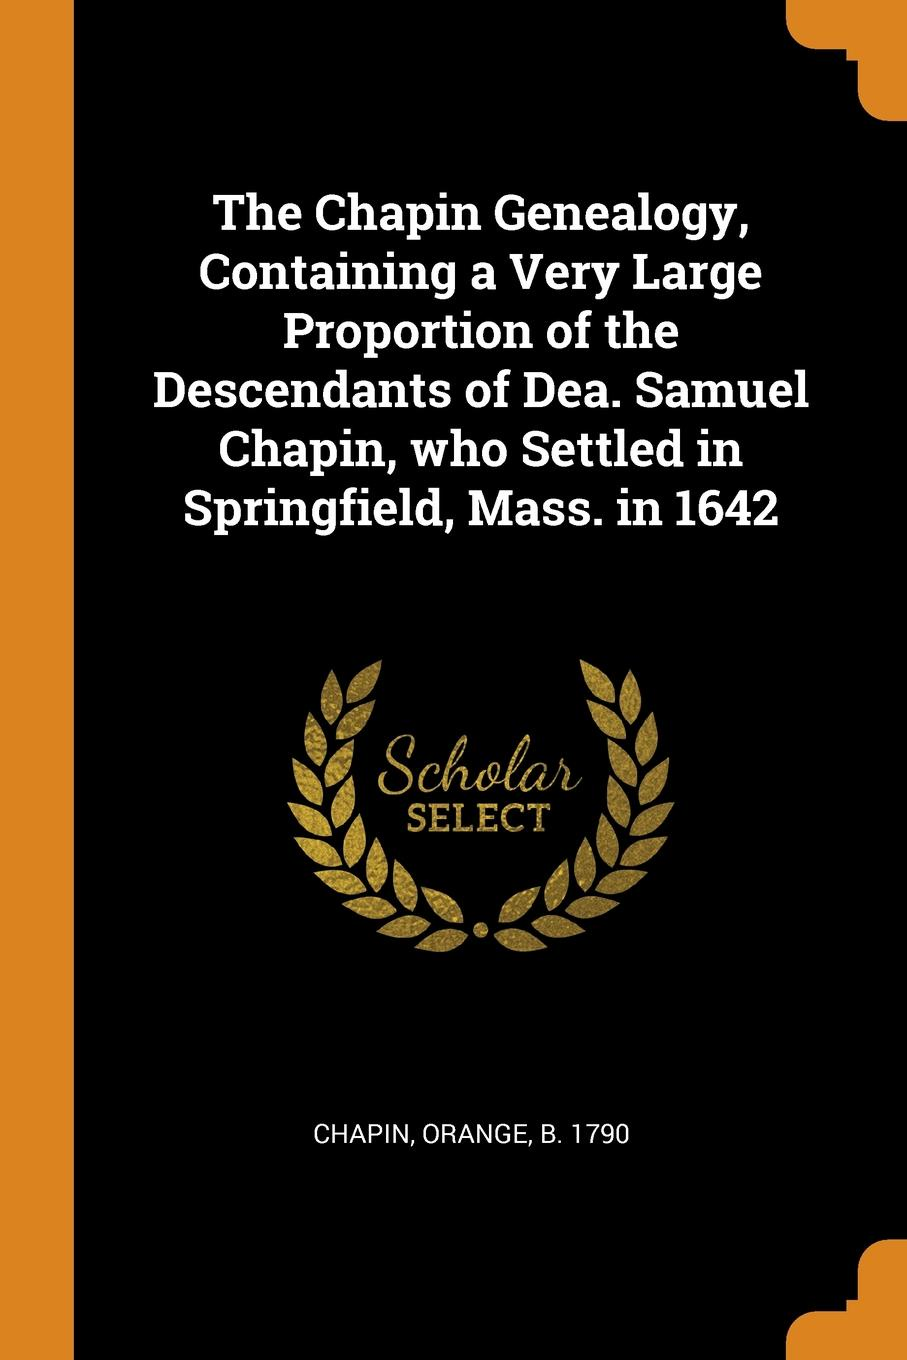 The Chapin Genealogy, Containing a Very Large Proportion of the Descendants of Dea. Samuel Chapin, who Settled in Springfield, Mass. in 1642 h m chapin life of deacon samuel chapin of springfield